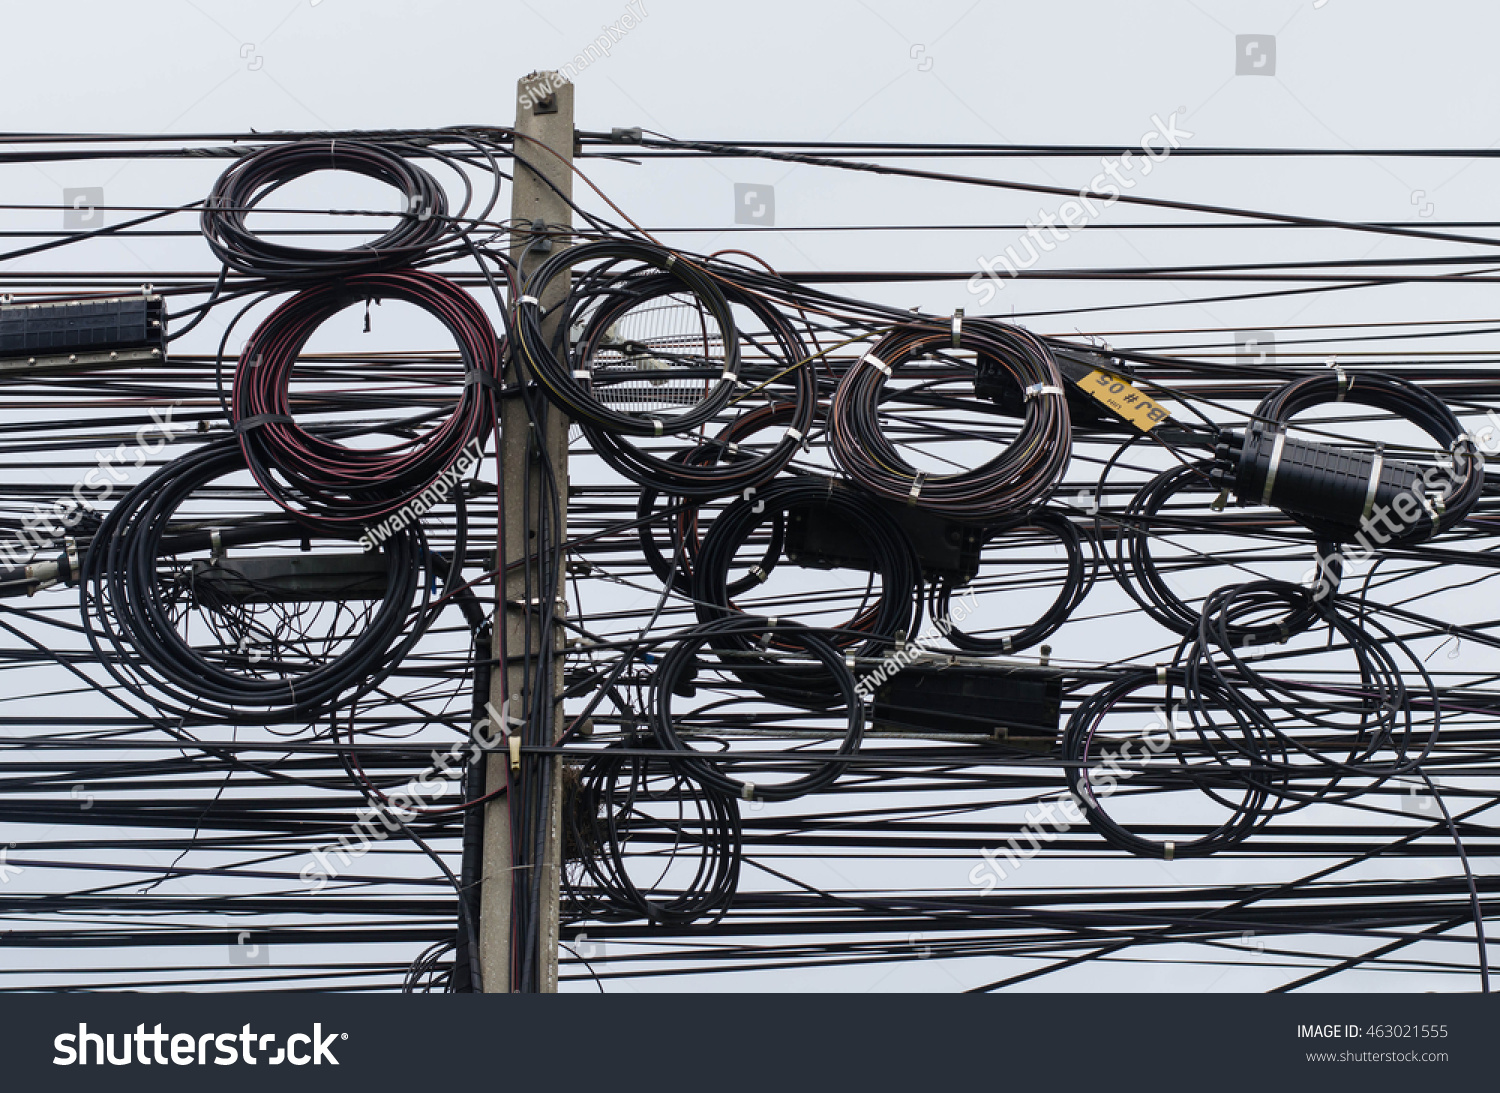 Rangsit Pathumthani Thailand July 162016 Cable Electric Stock Photo Telephone Connection Wiring In Pathumthanithailand Wire